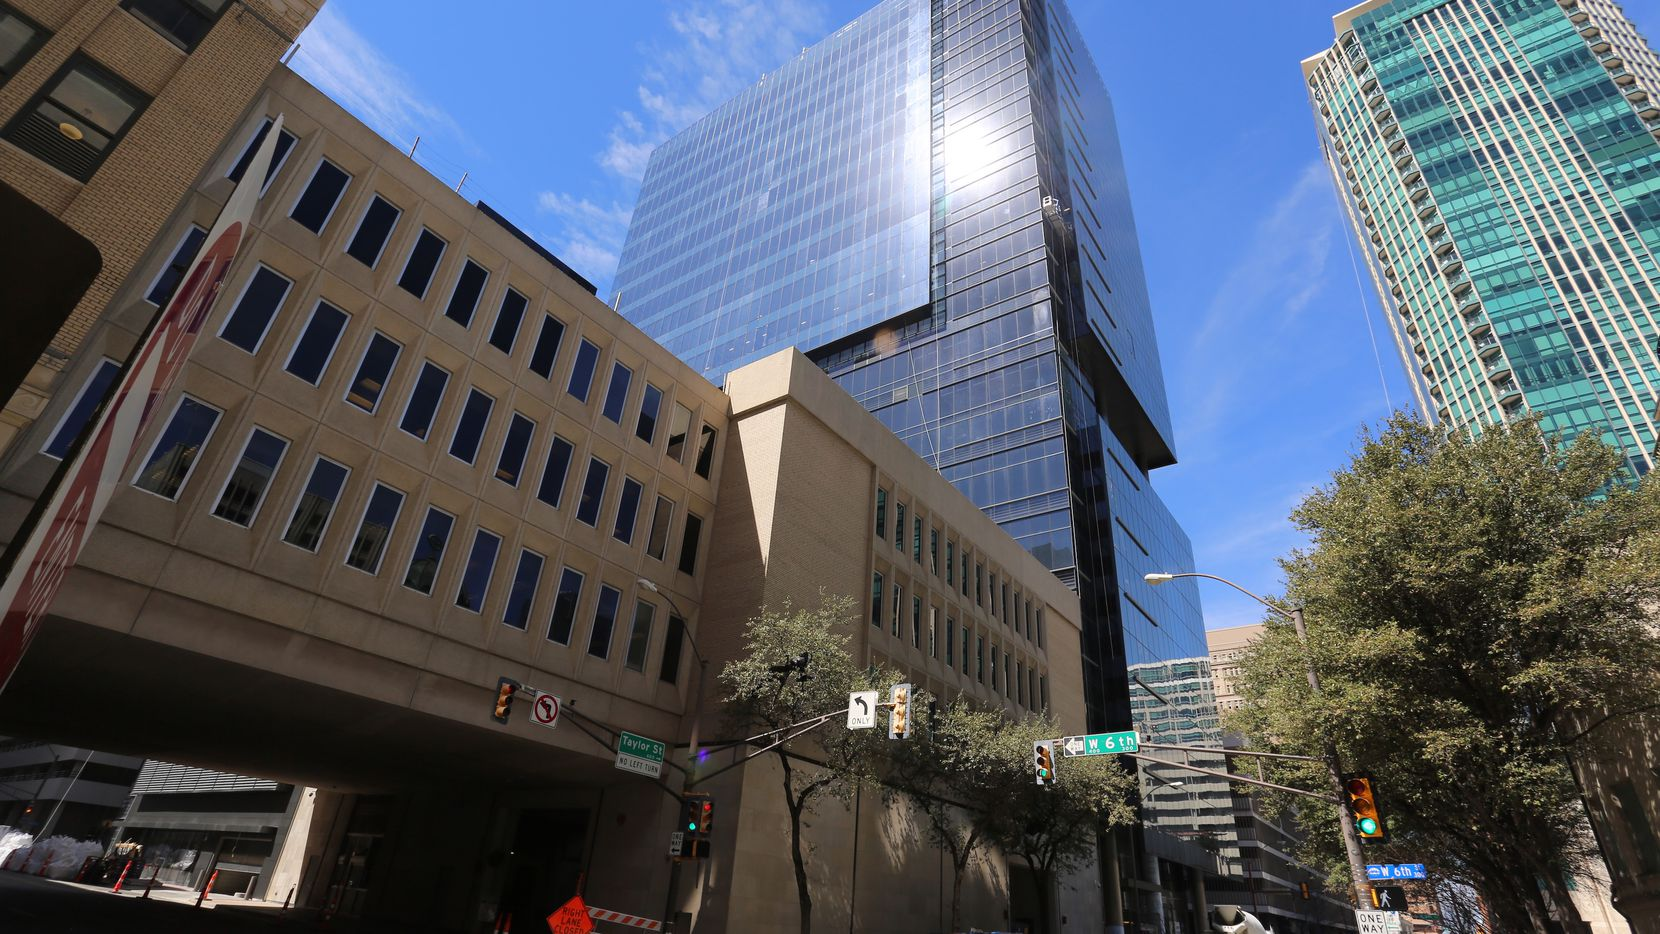 Accounting firm Whitley Penn is taking two floors in the new Frost Tower.